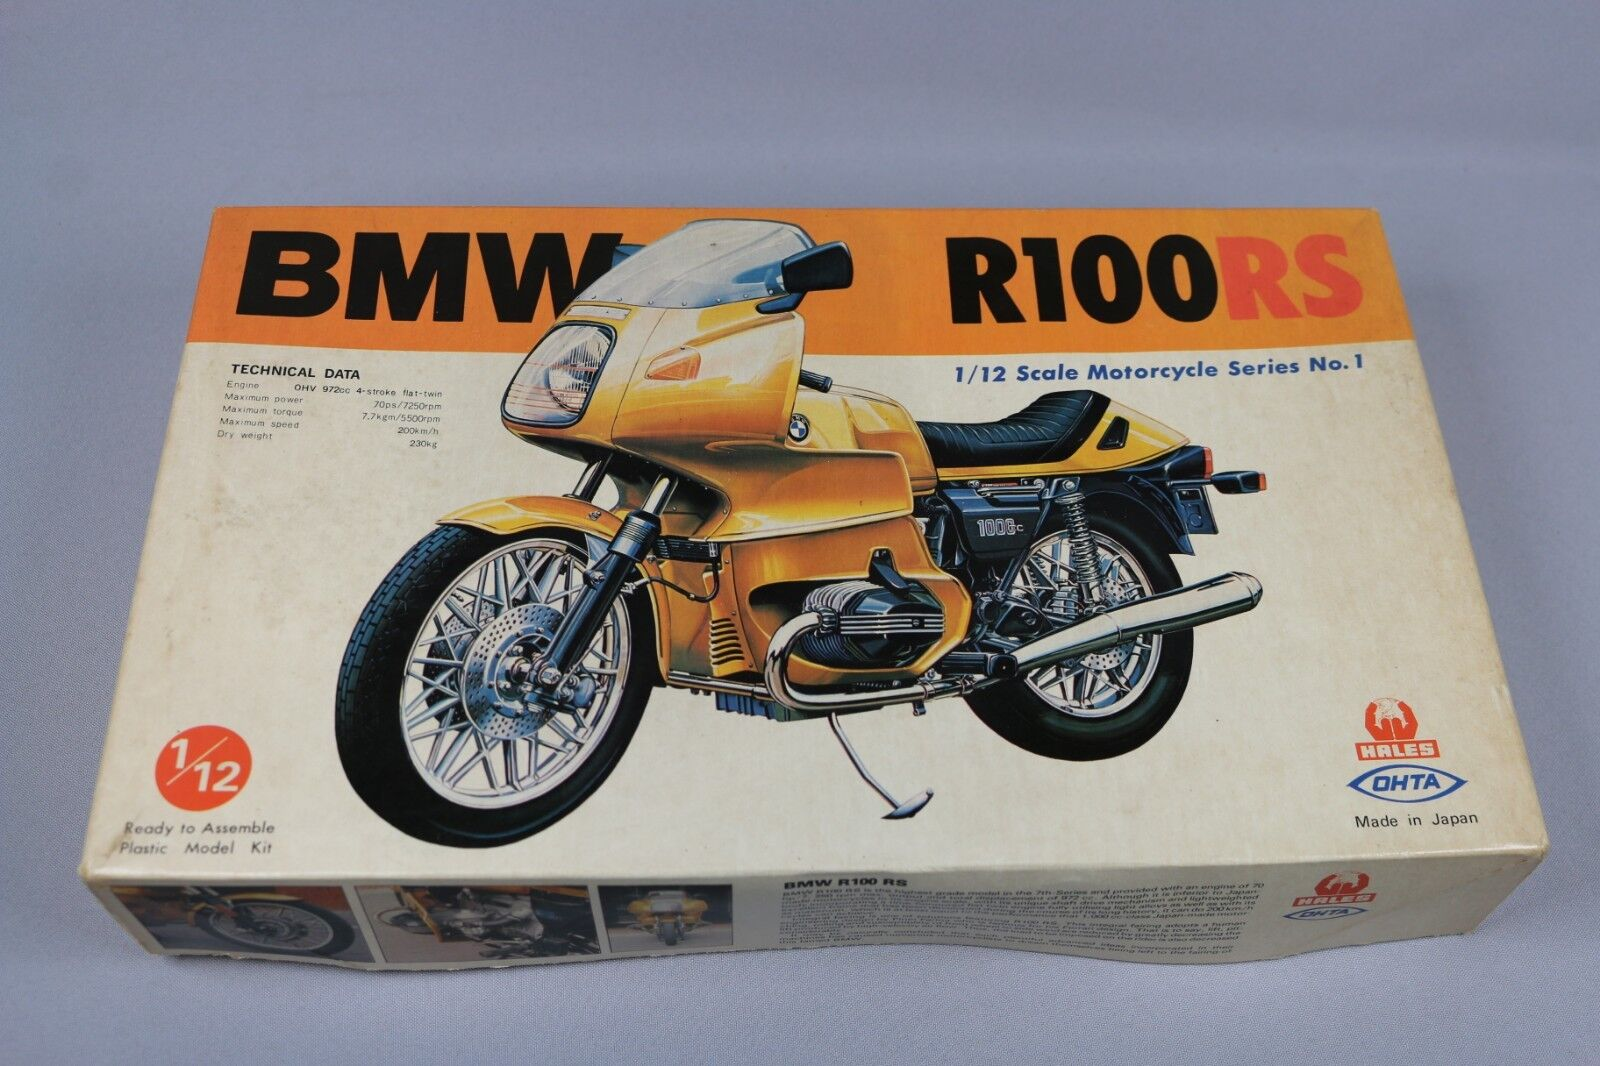 Zf1034 Hales mr. ohta 1 12 model m12021-1000 bmw r100rs motorcycle series no. 1